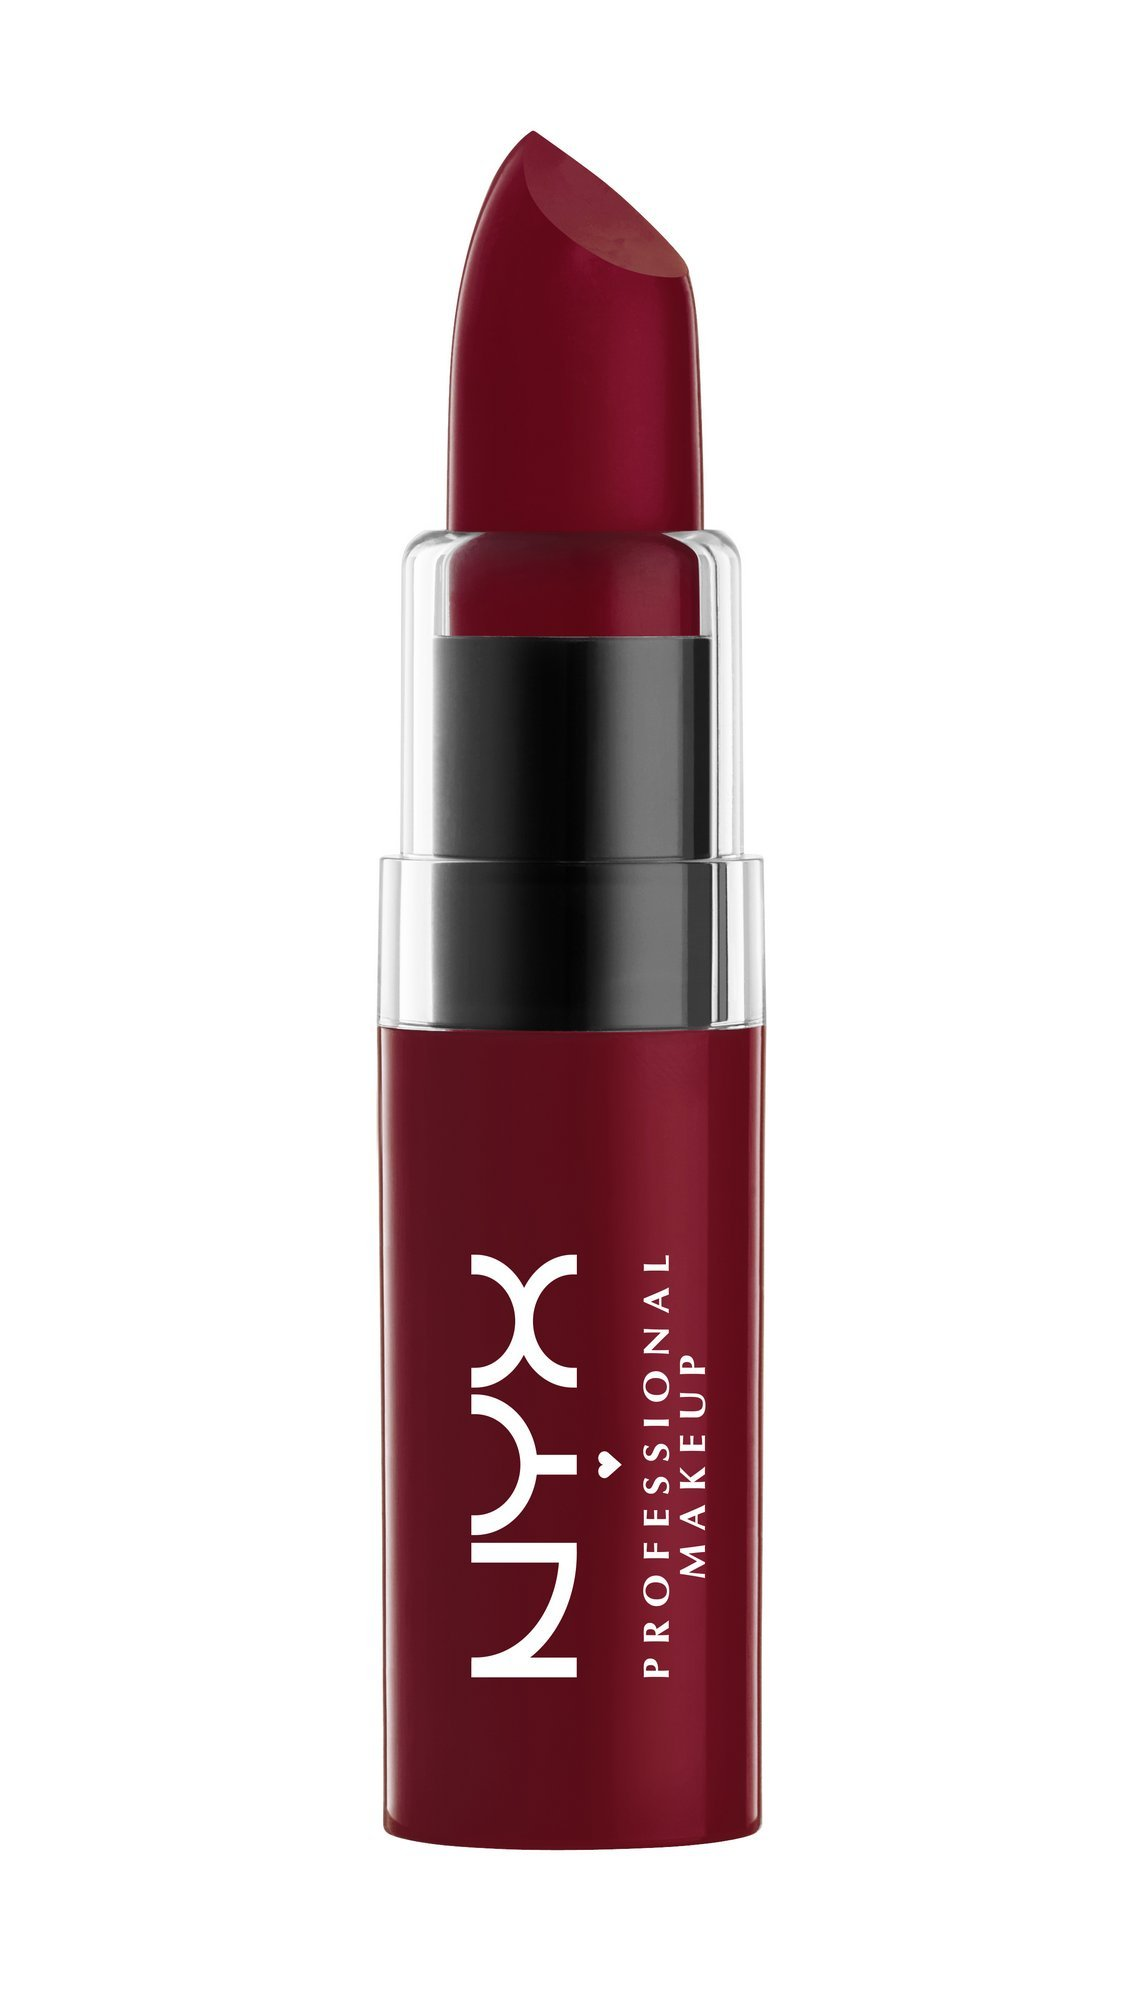 Nyx Lip Lingerie Makes A Great Dupe For The Kylie Jenner: Amazon.com : NYX Cosmetics Butter Lipstick Root Beer Float